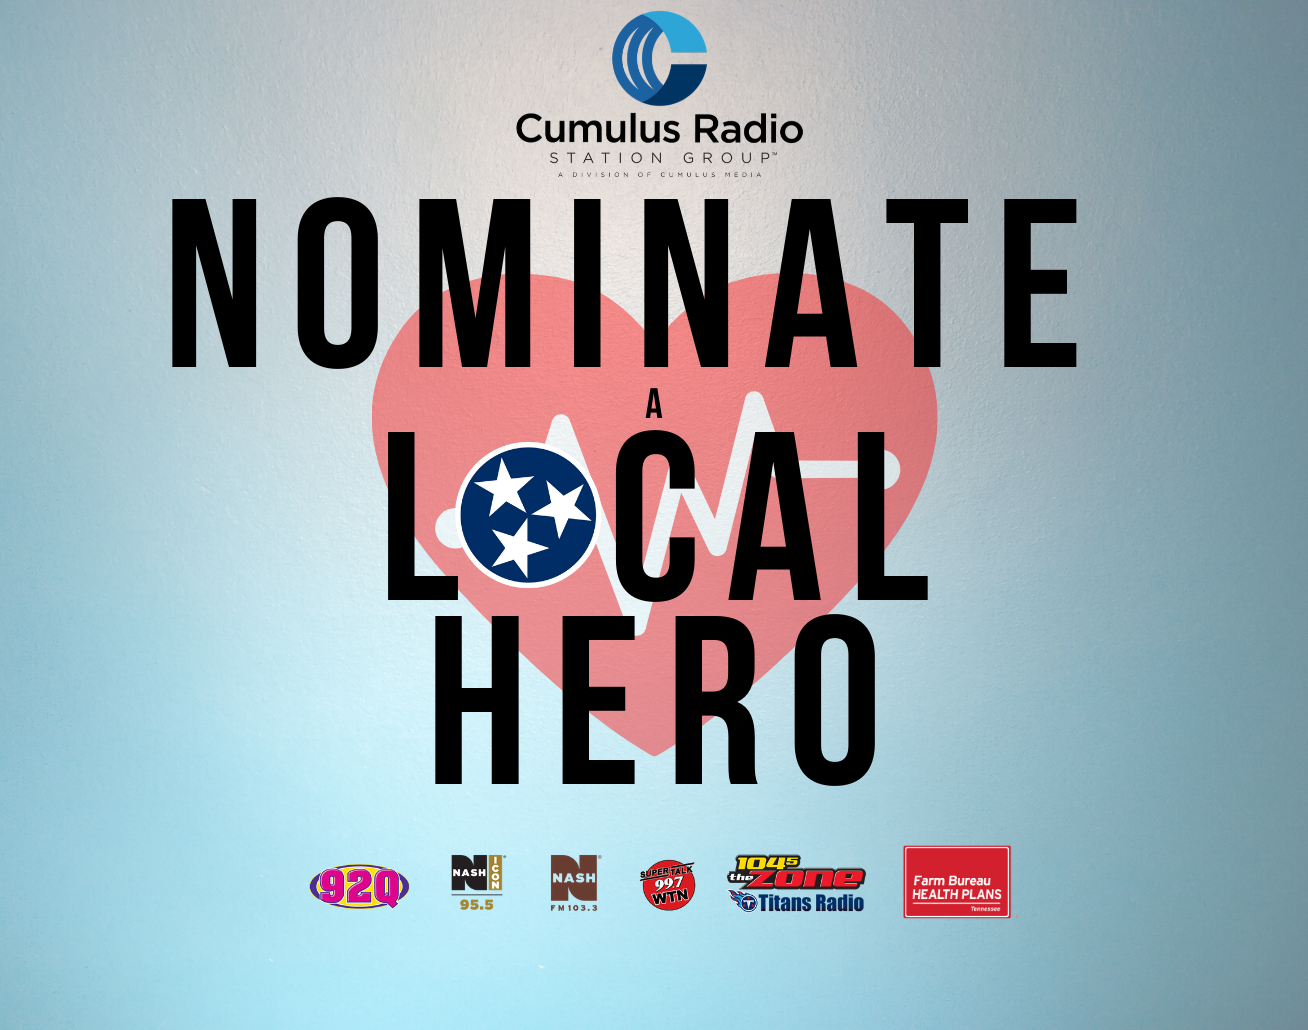 Nominate A Local Hero